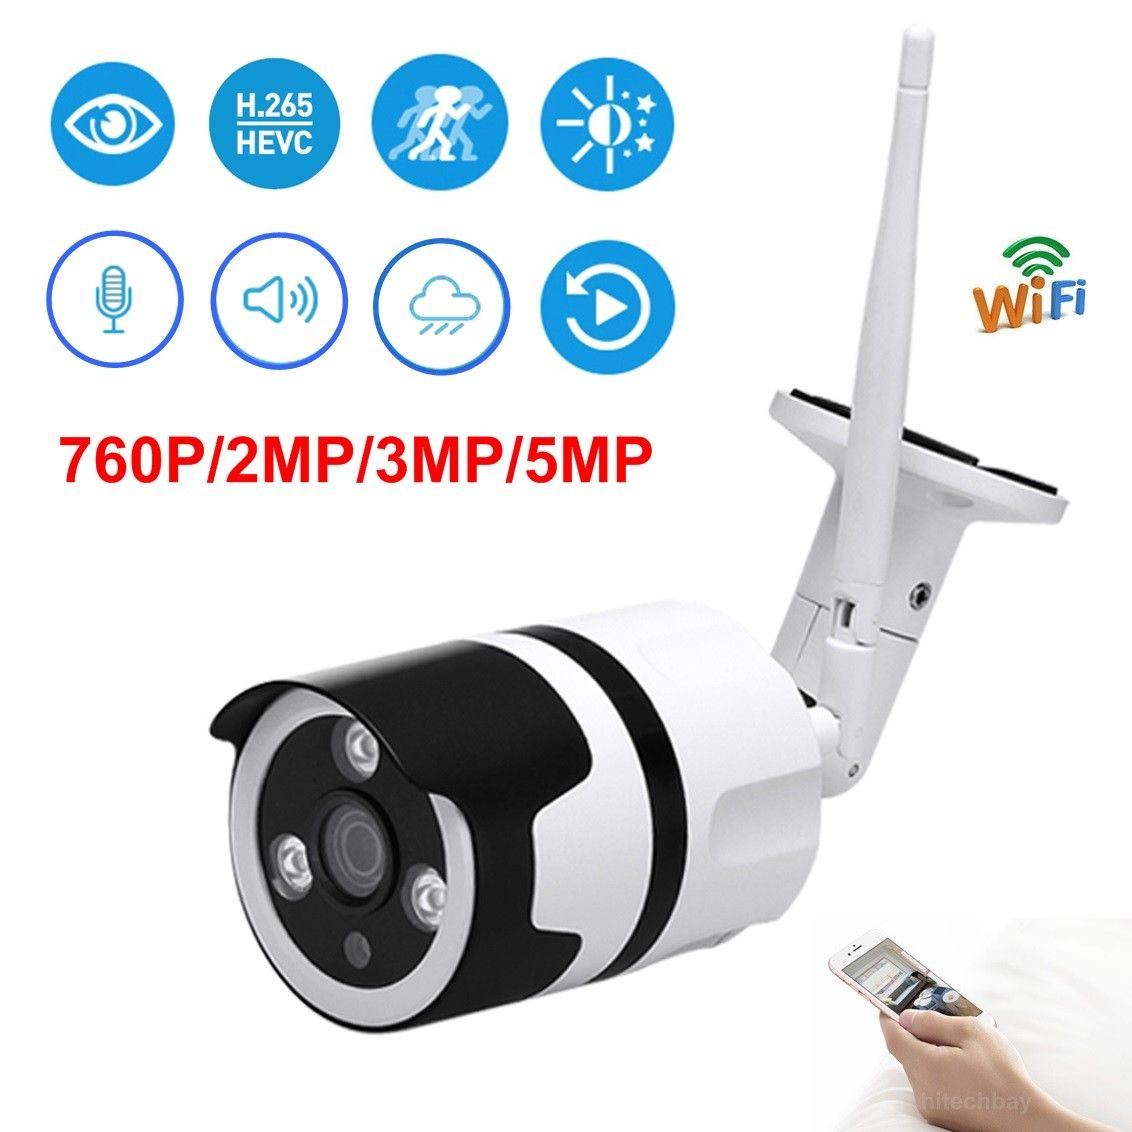 [해외]HD 720P/1080P/3MP/5MP WiFi IP Camera Wireless Mic IR Night Outdoor Onvif Bullet/HD 720P/1080P/3MP/5MP WiFi IP Camera Wireless Mic IR Night Outdoor